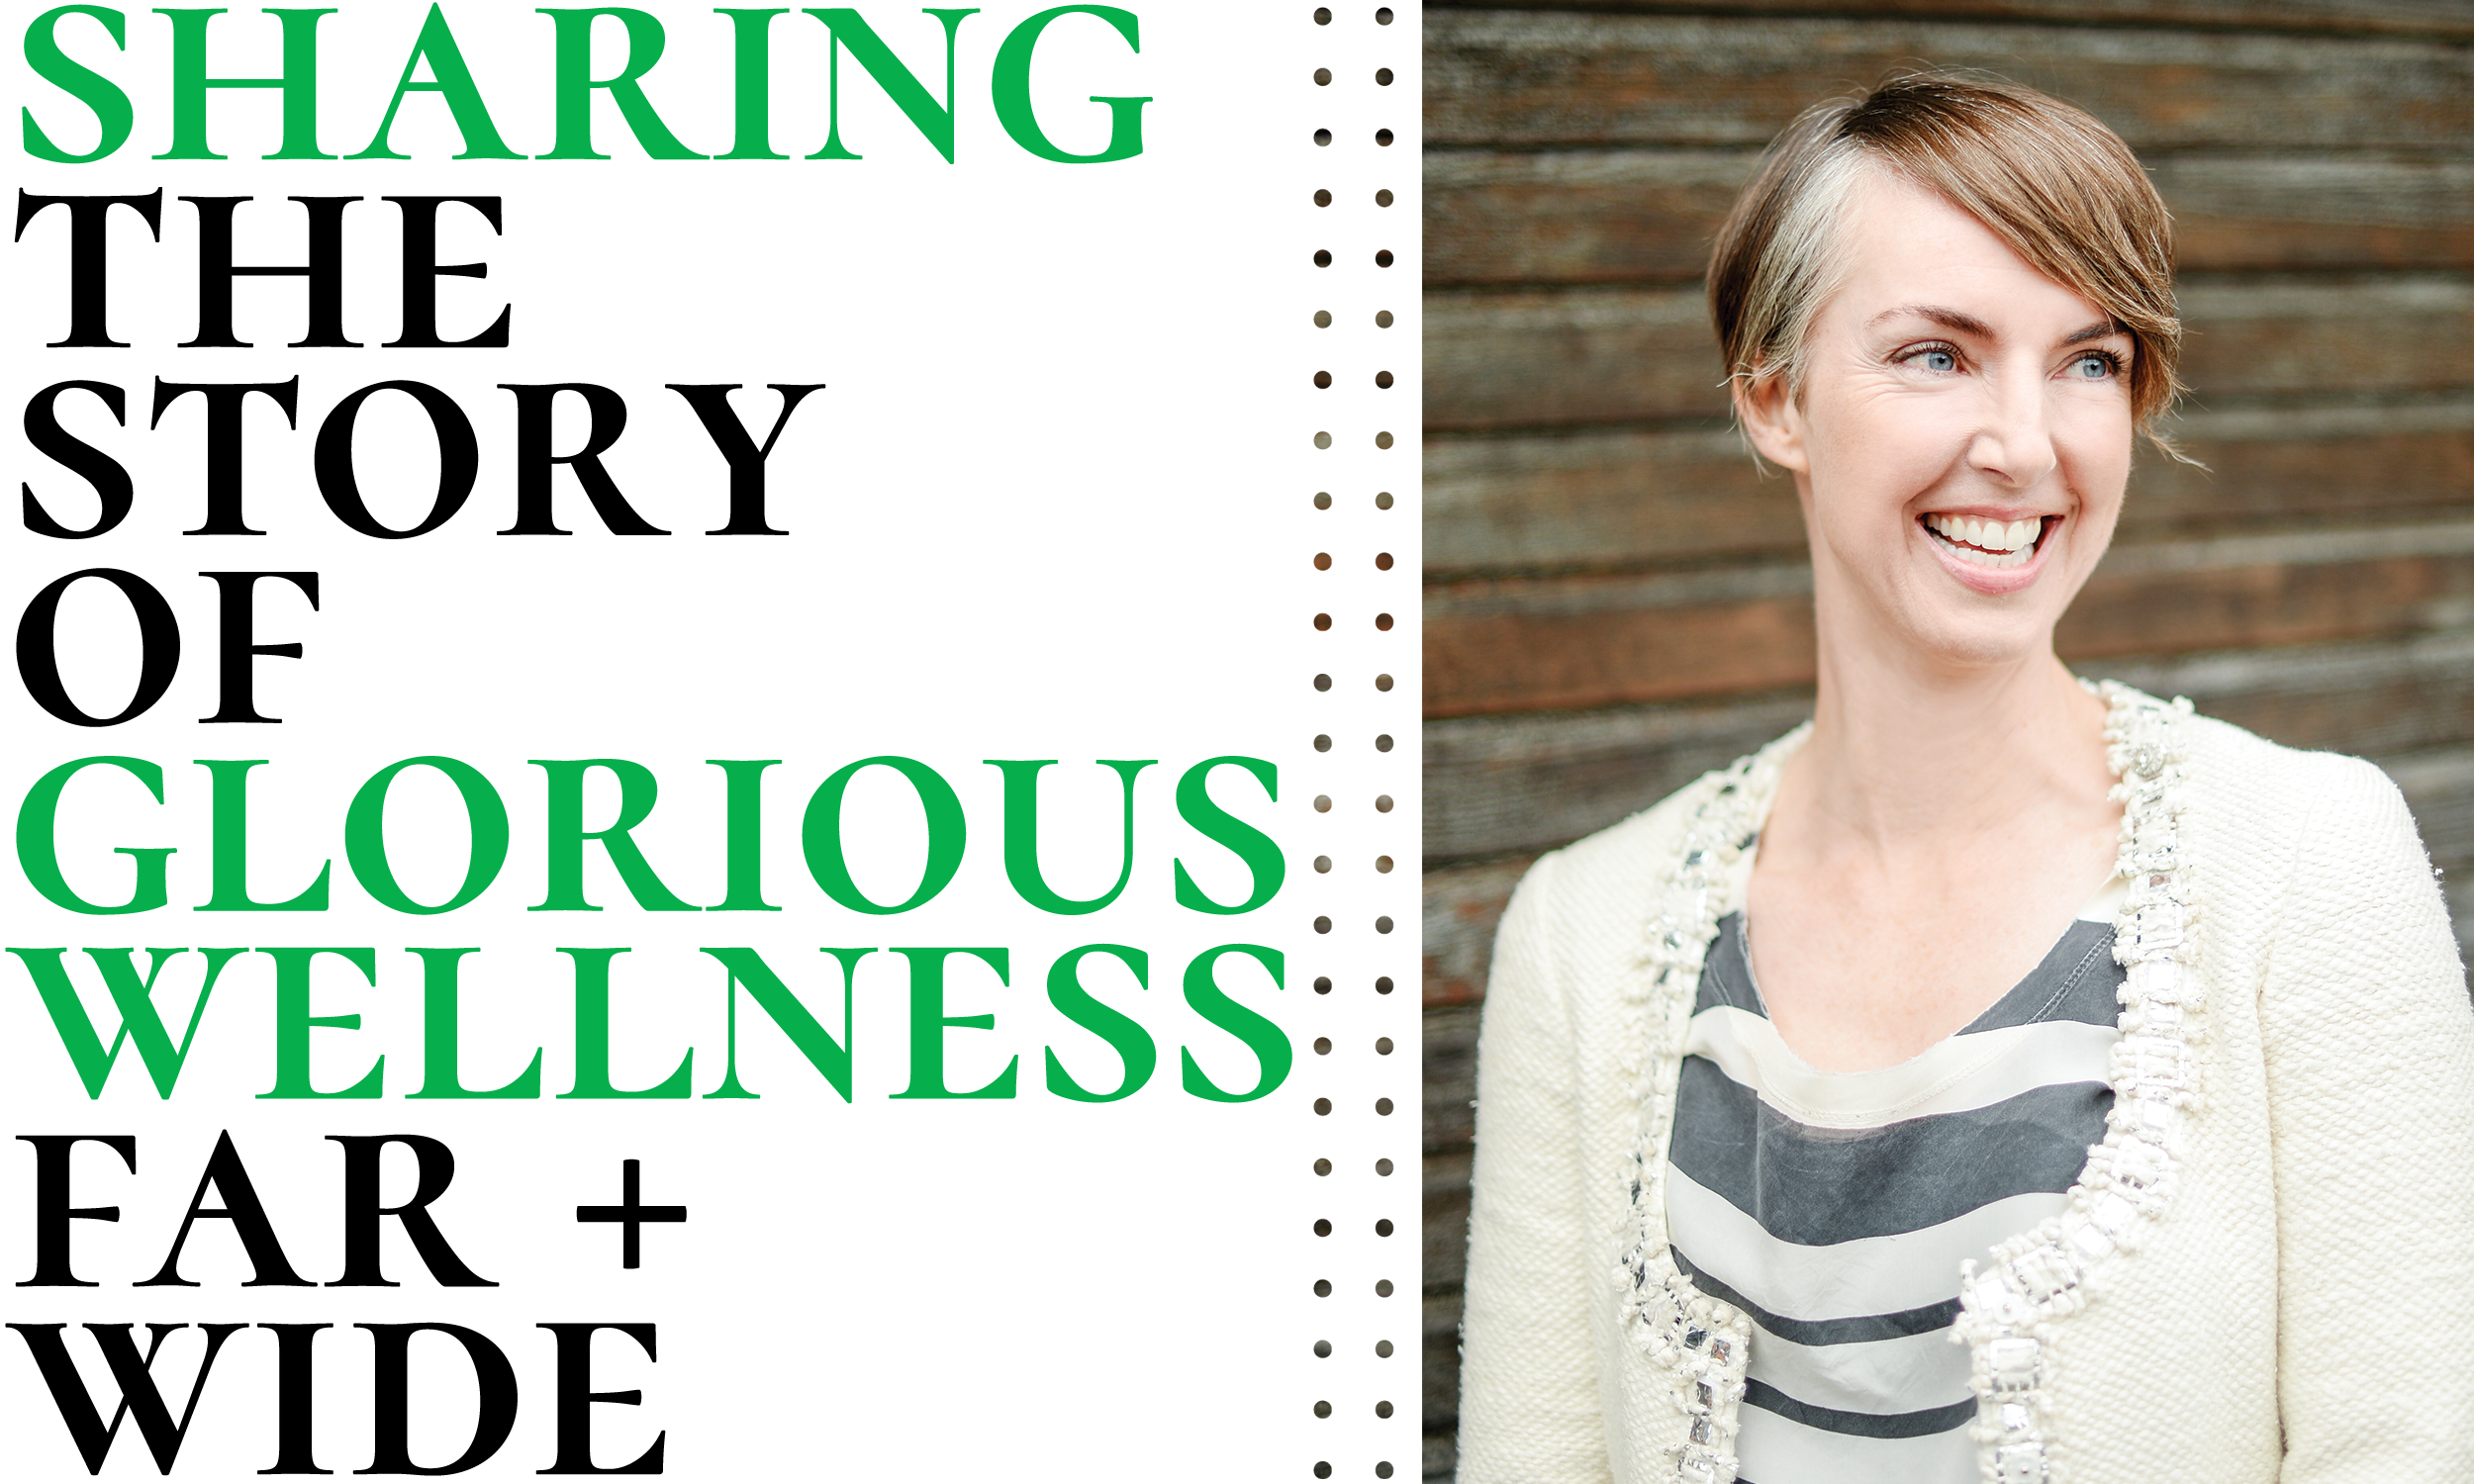 Book-Rebecca-Hirst-of-Glorious-Wellness-as-a-Speaker.png